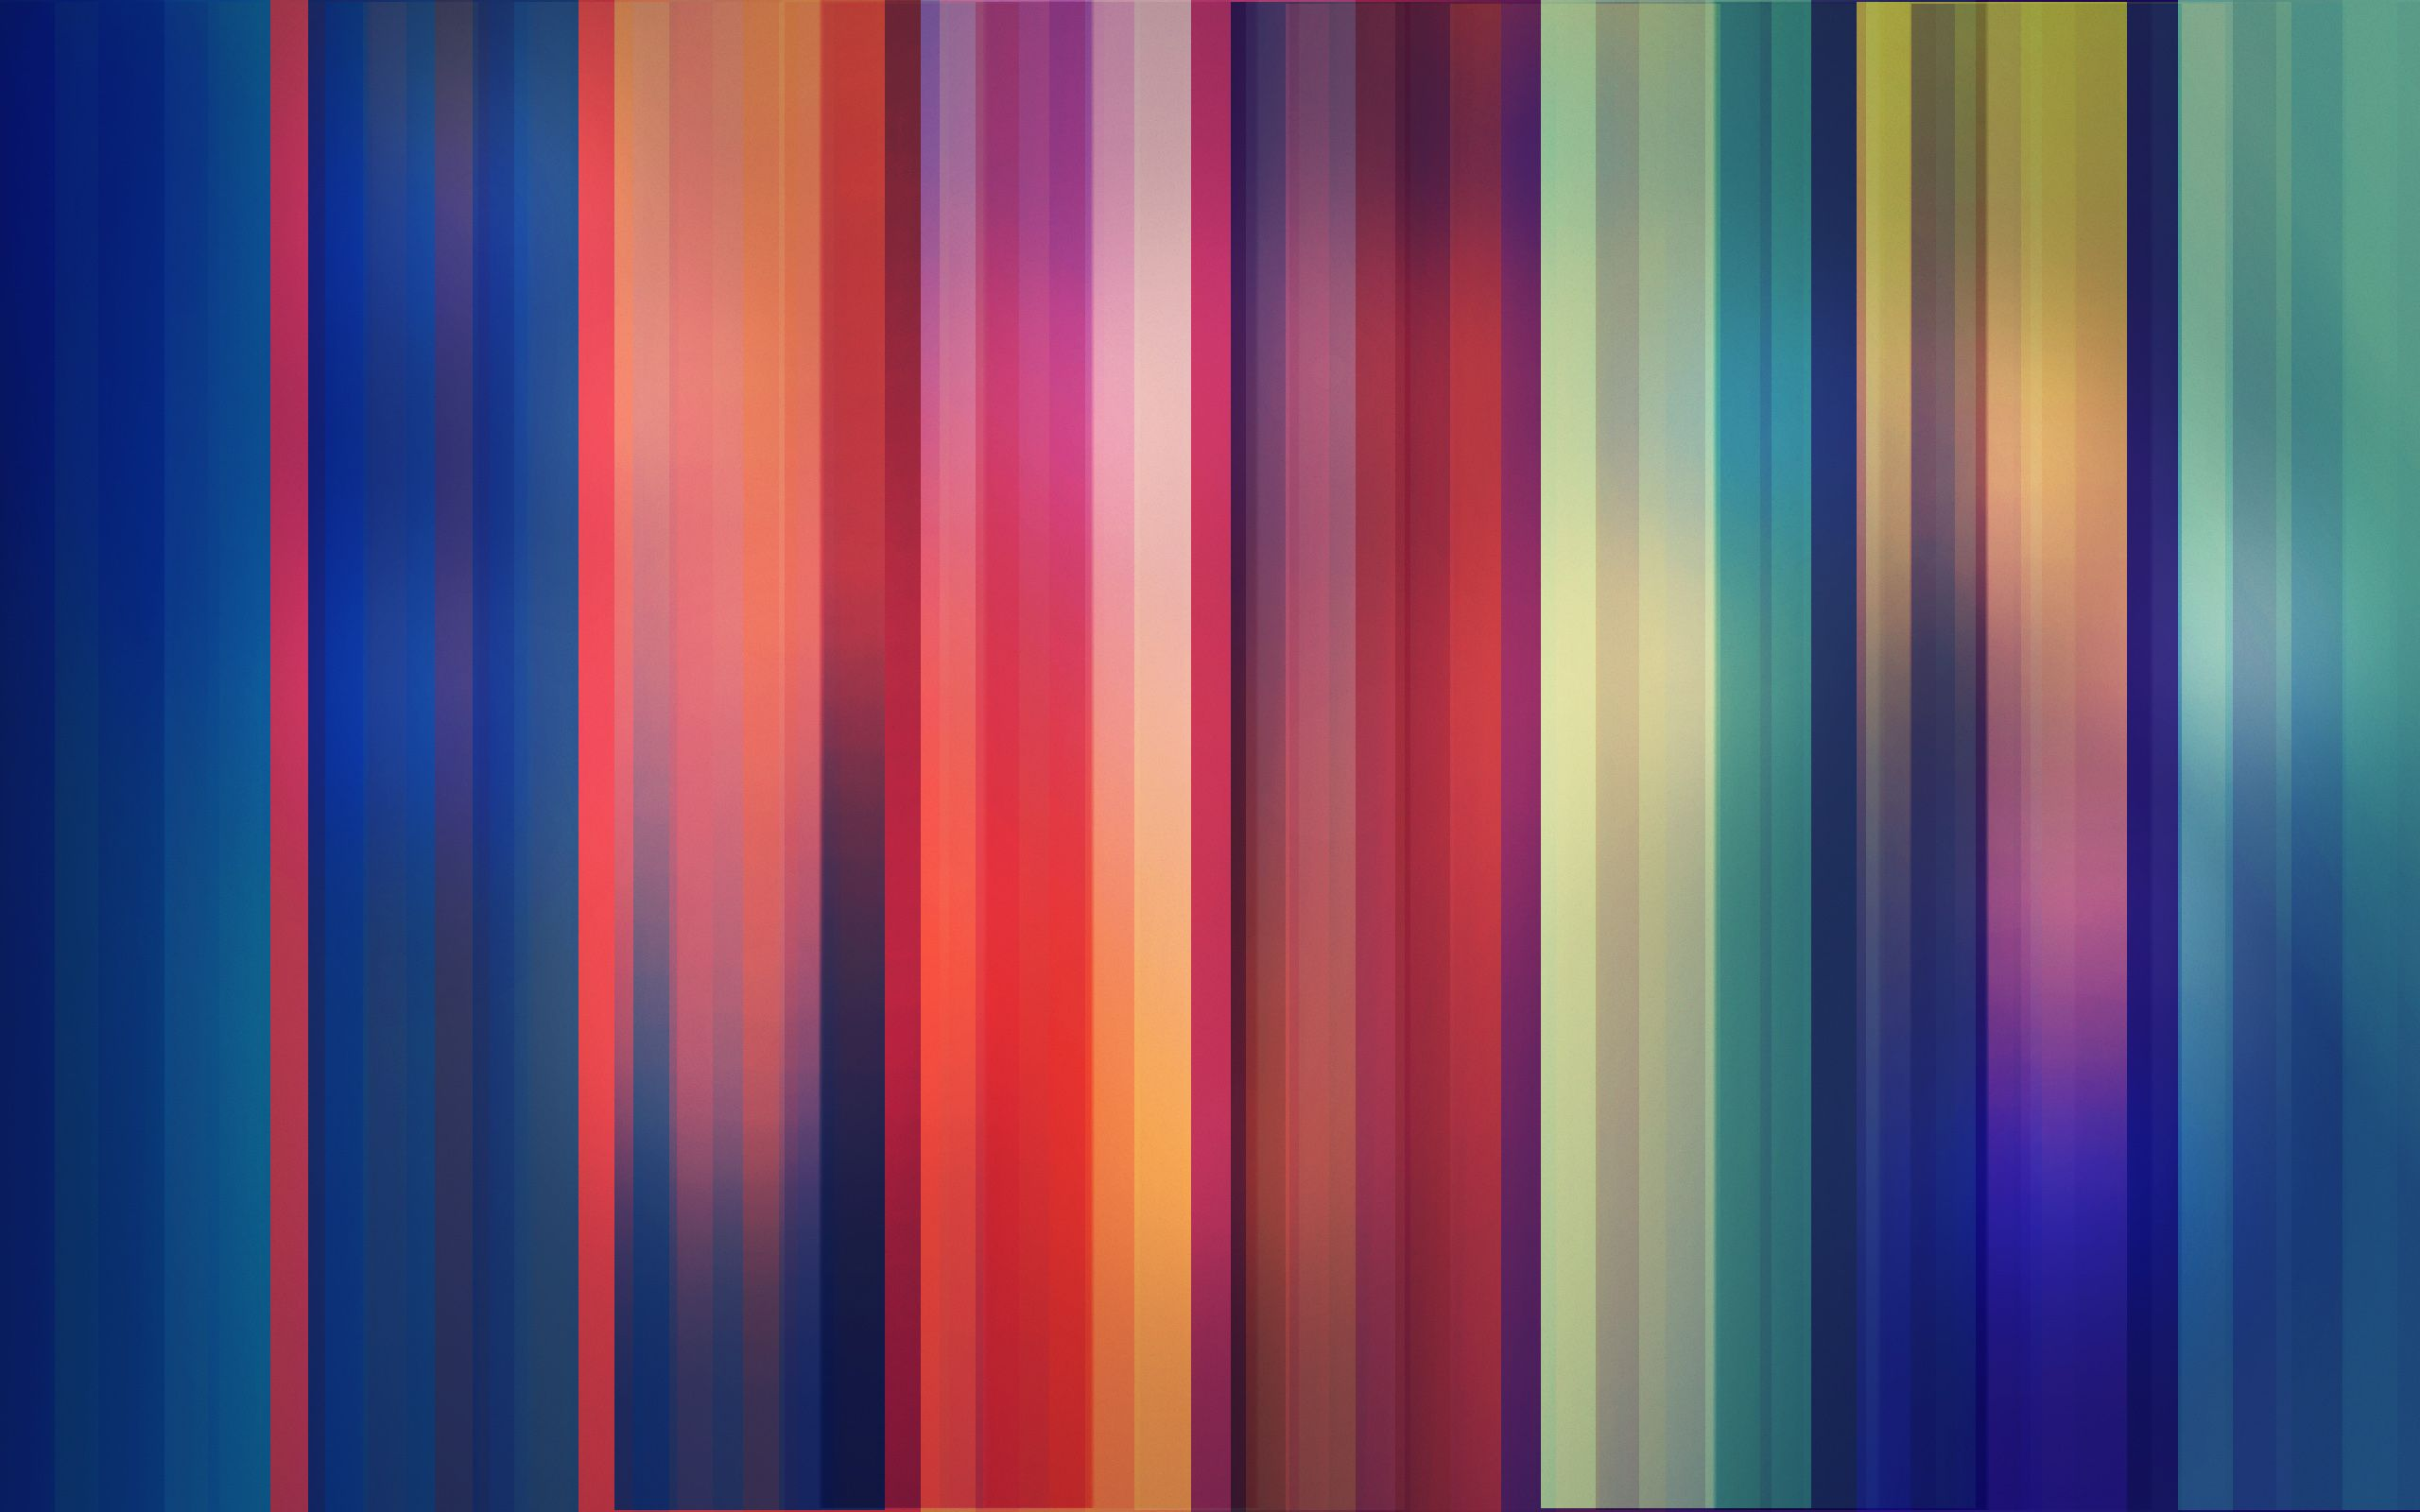 Colorful Stripes Wide Hd Wallpapers High Definition 100 Circuit Board Wallpaper Quality